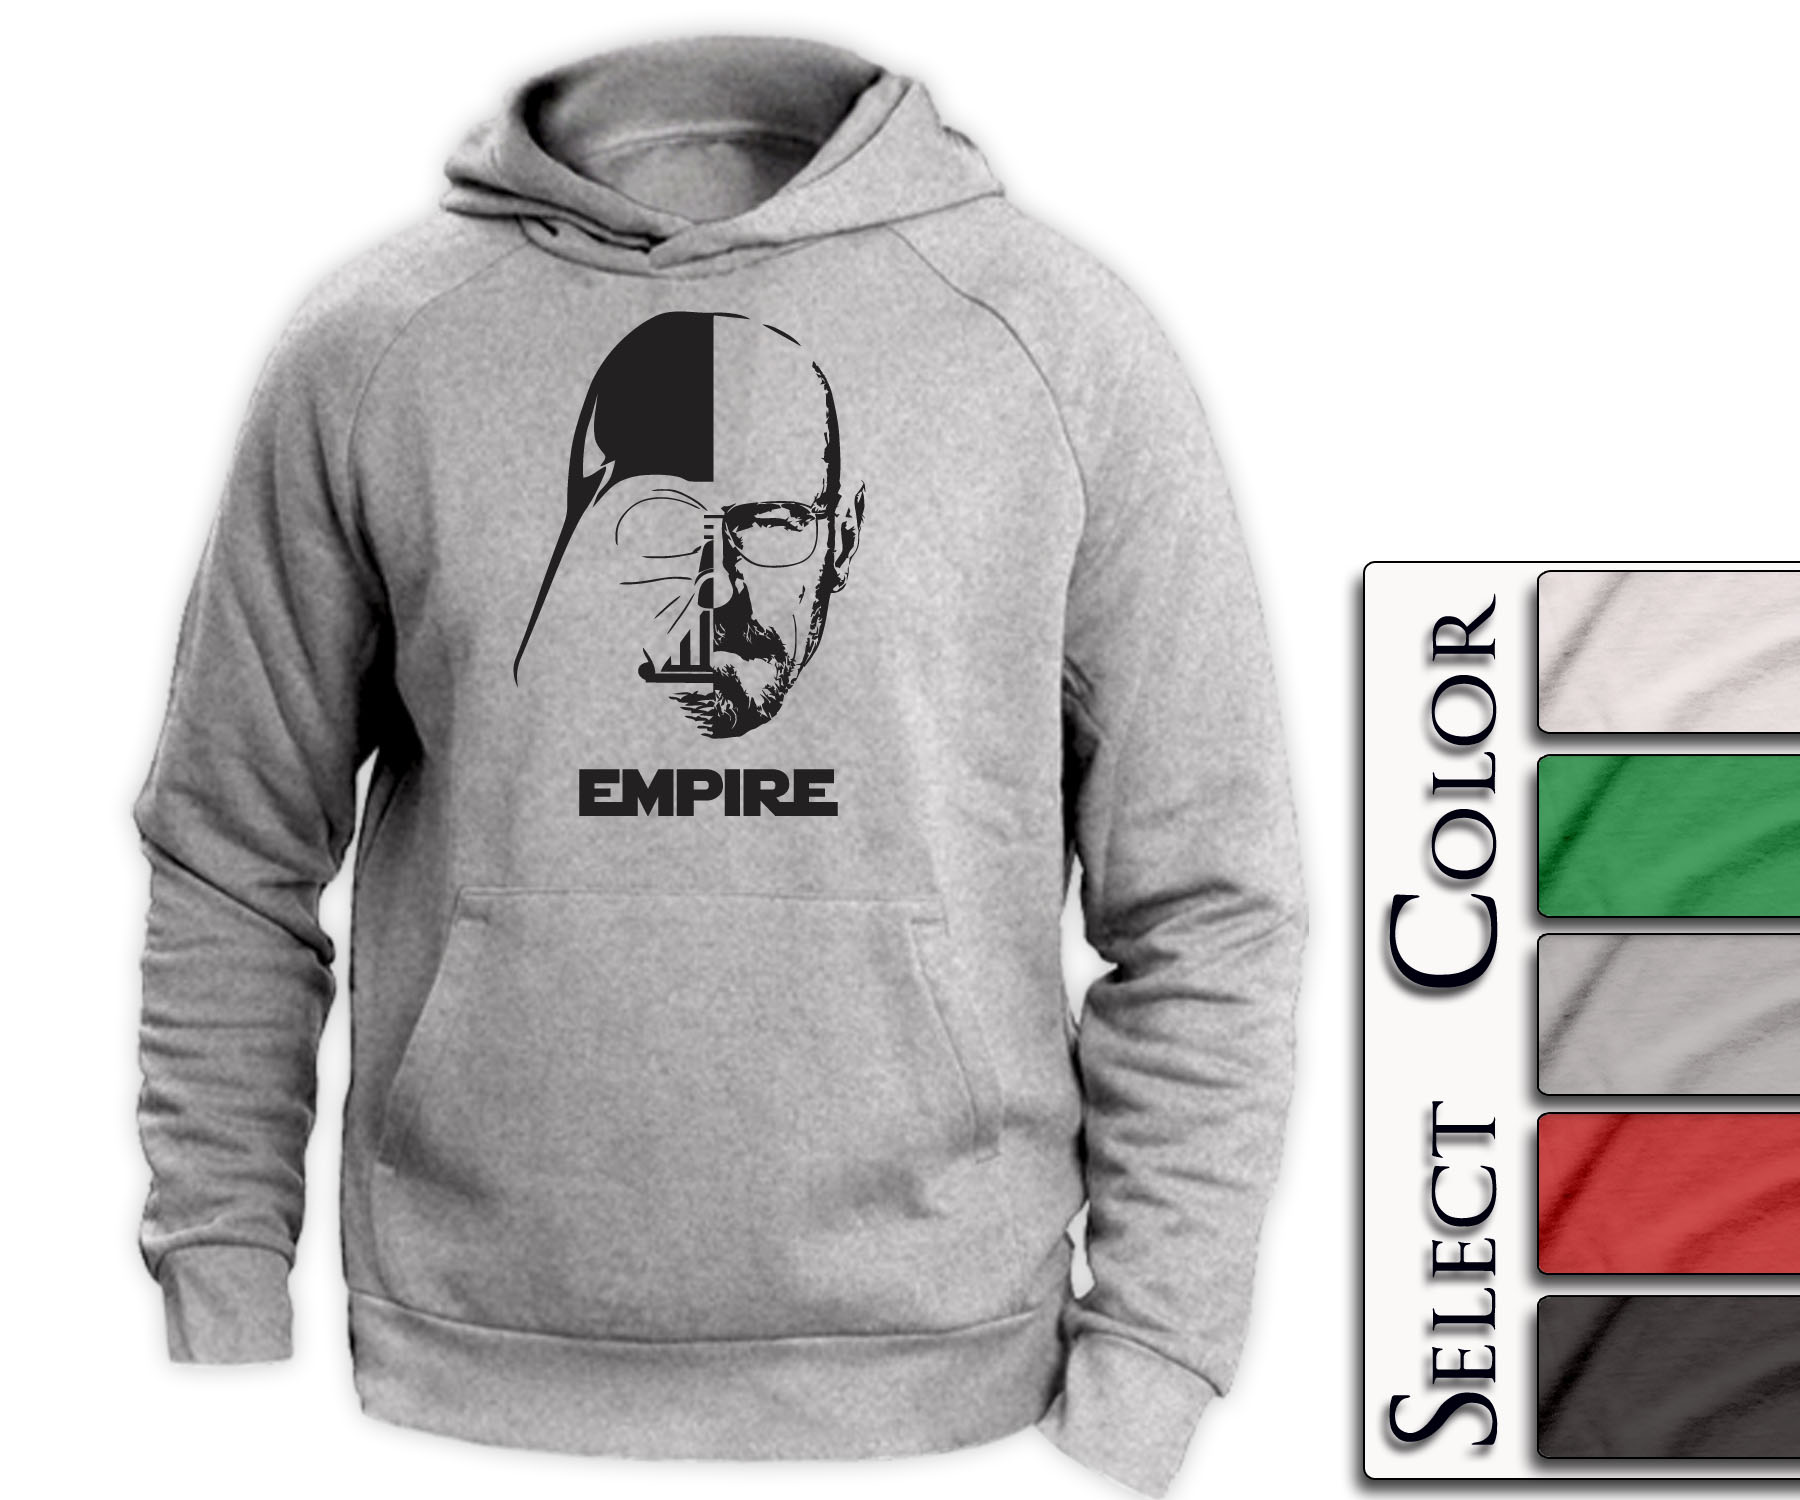 Empire Hoodie - breaking bad walter white tshirt darth vader star wars t shirt - A131